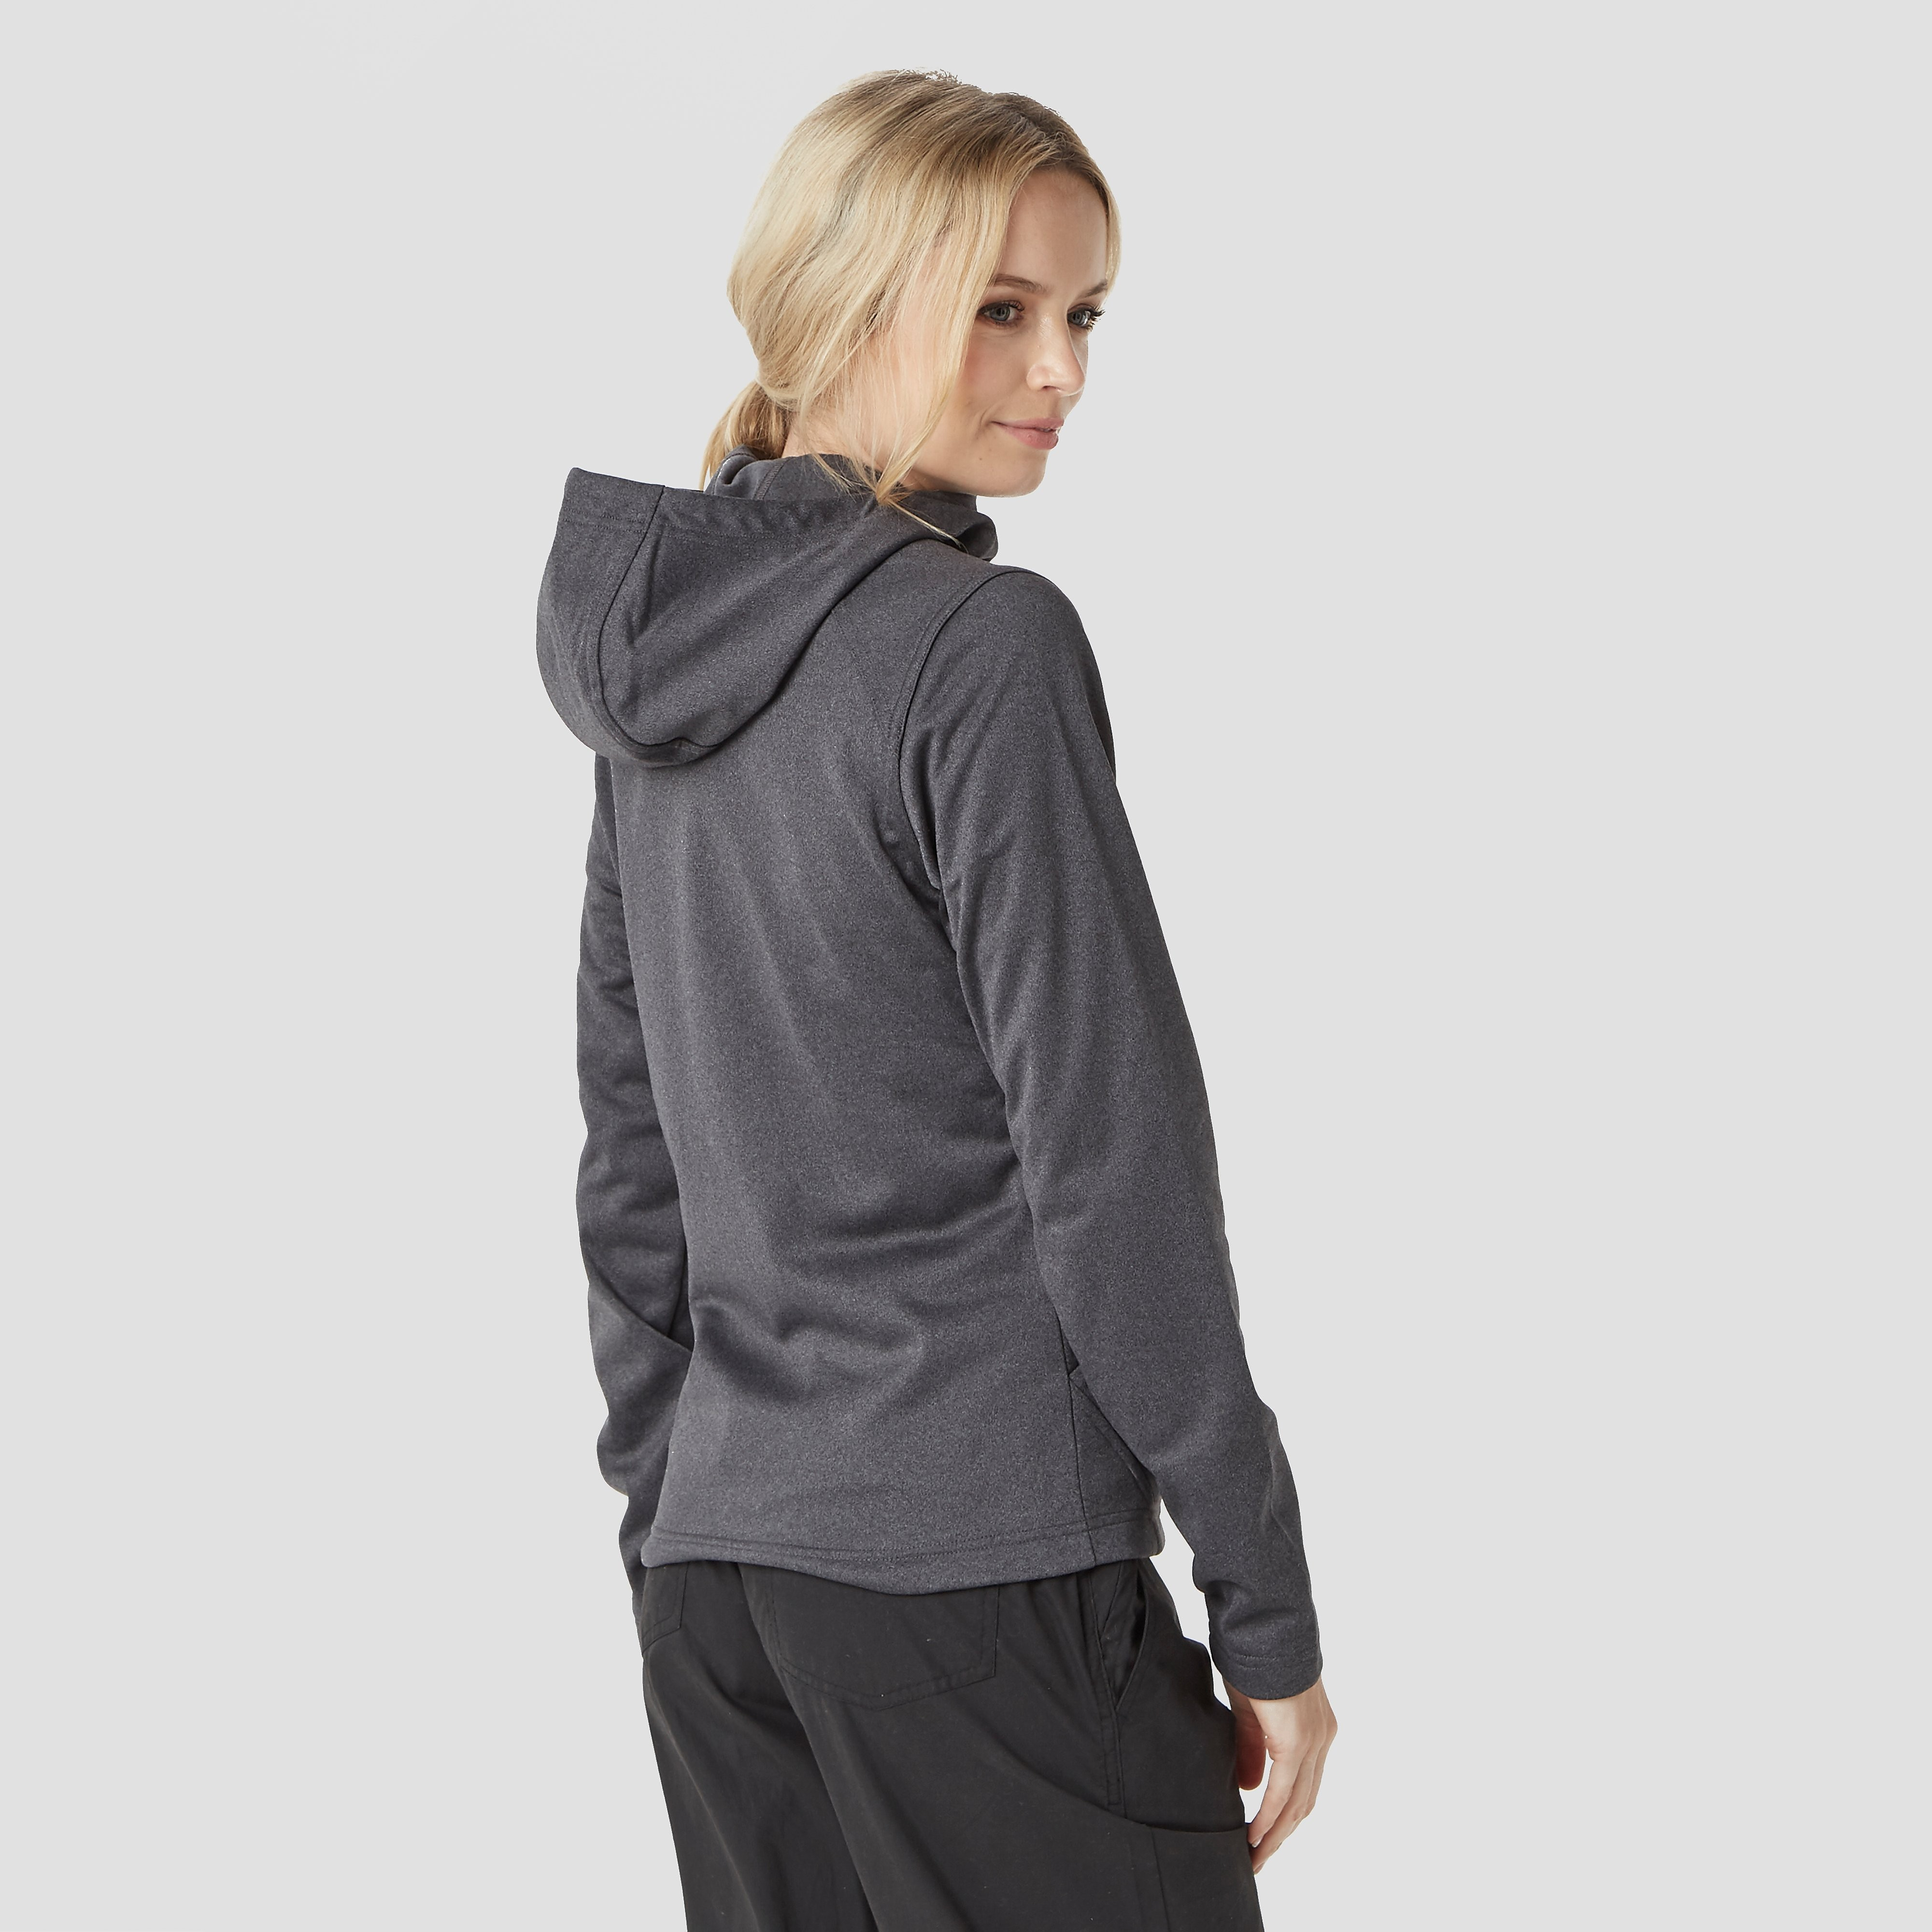 The North Face Mezzaluna Women's Tech Fleece